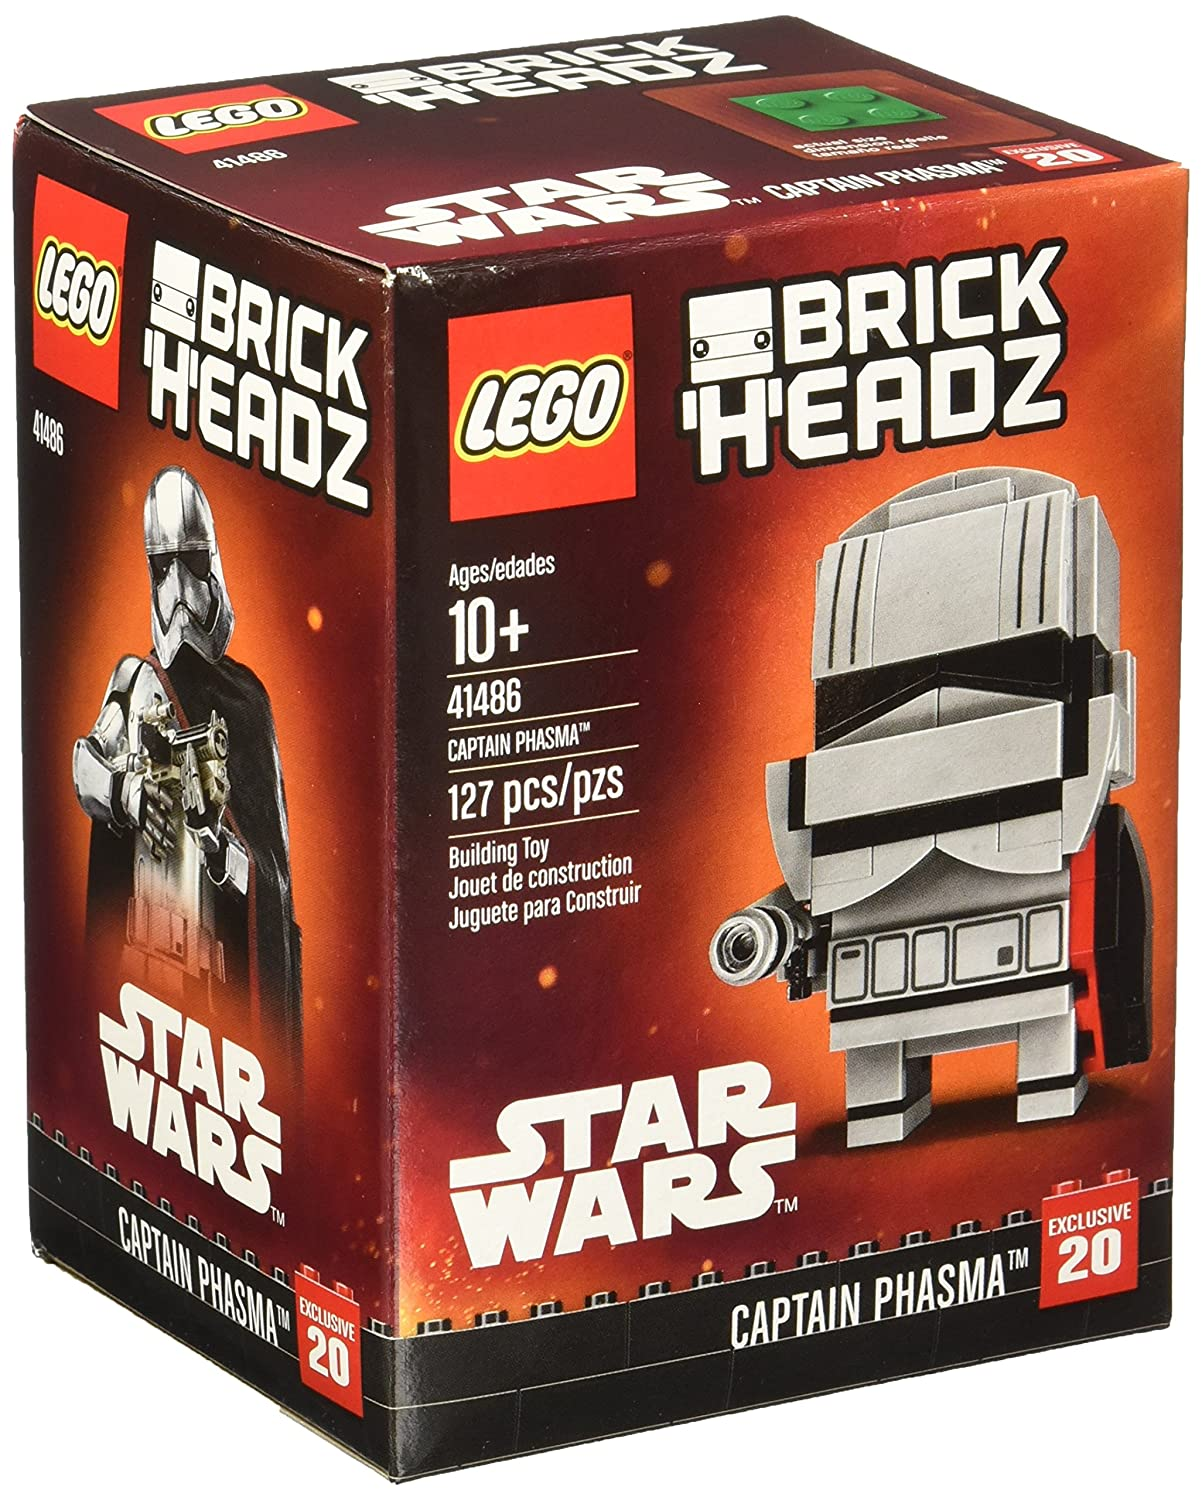 Top 11 Best Lego Brickheadz Reviews in 2019 4